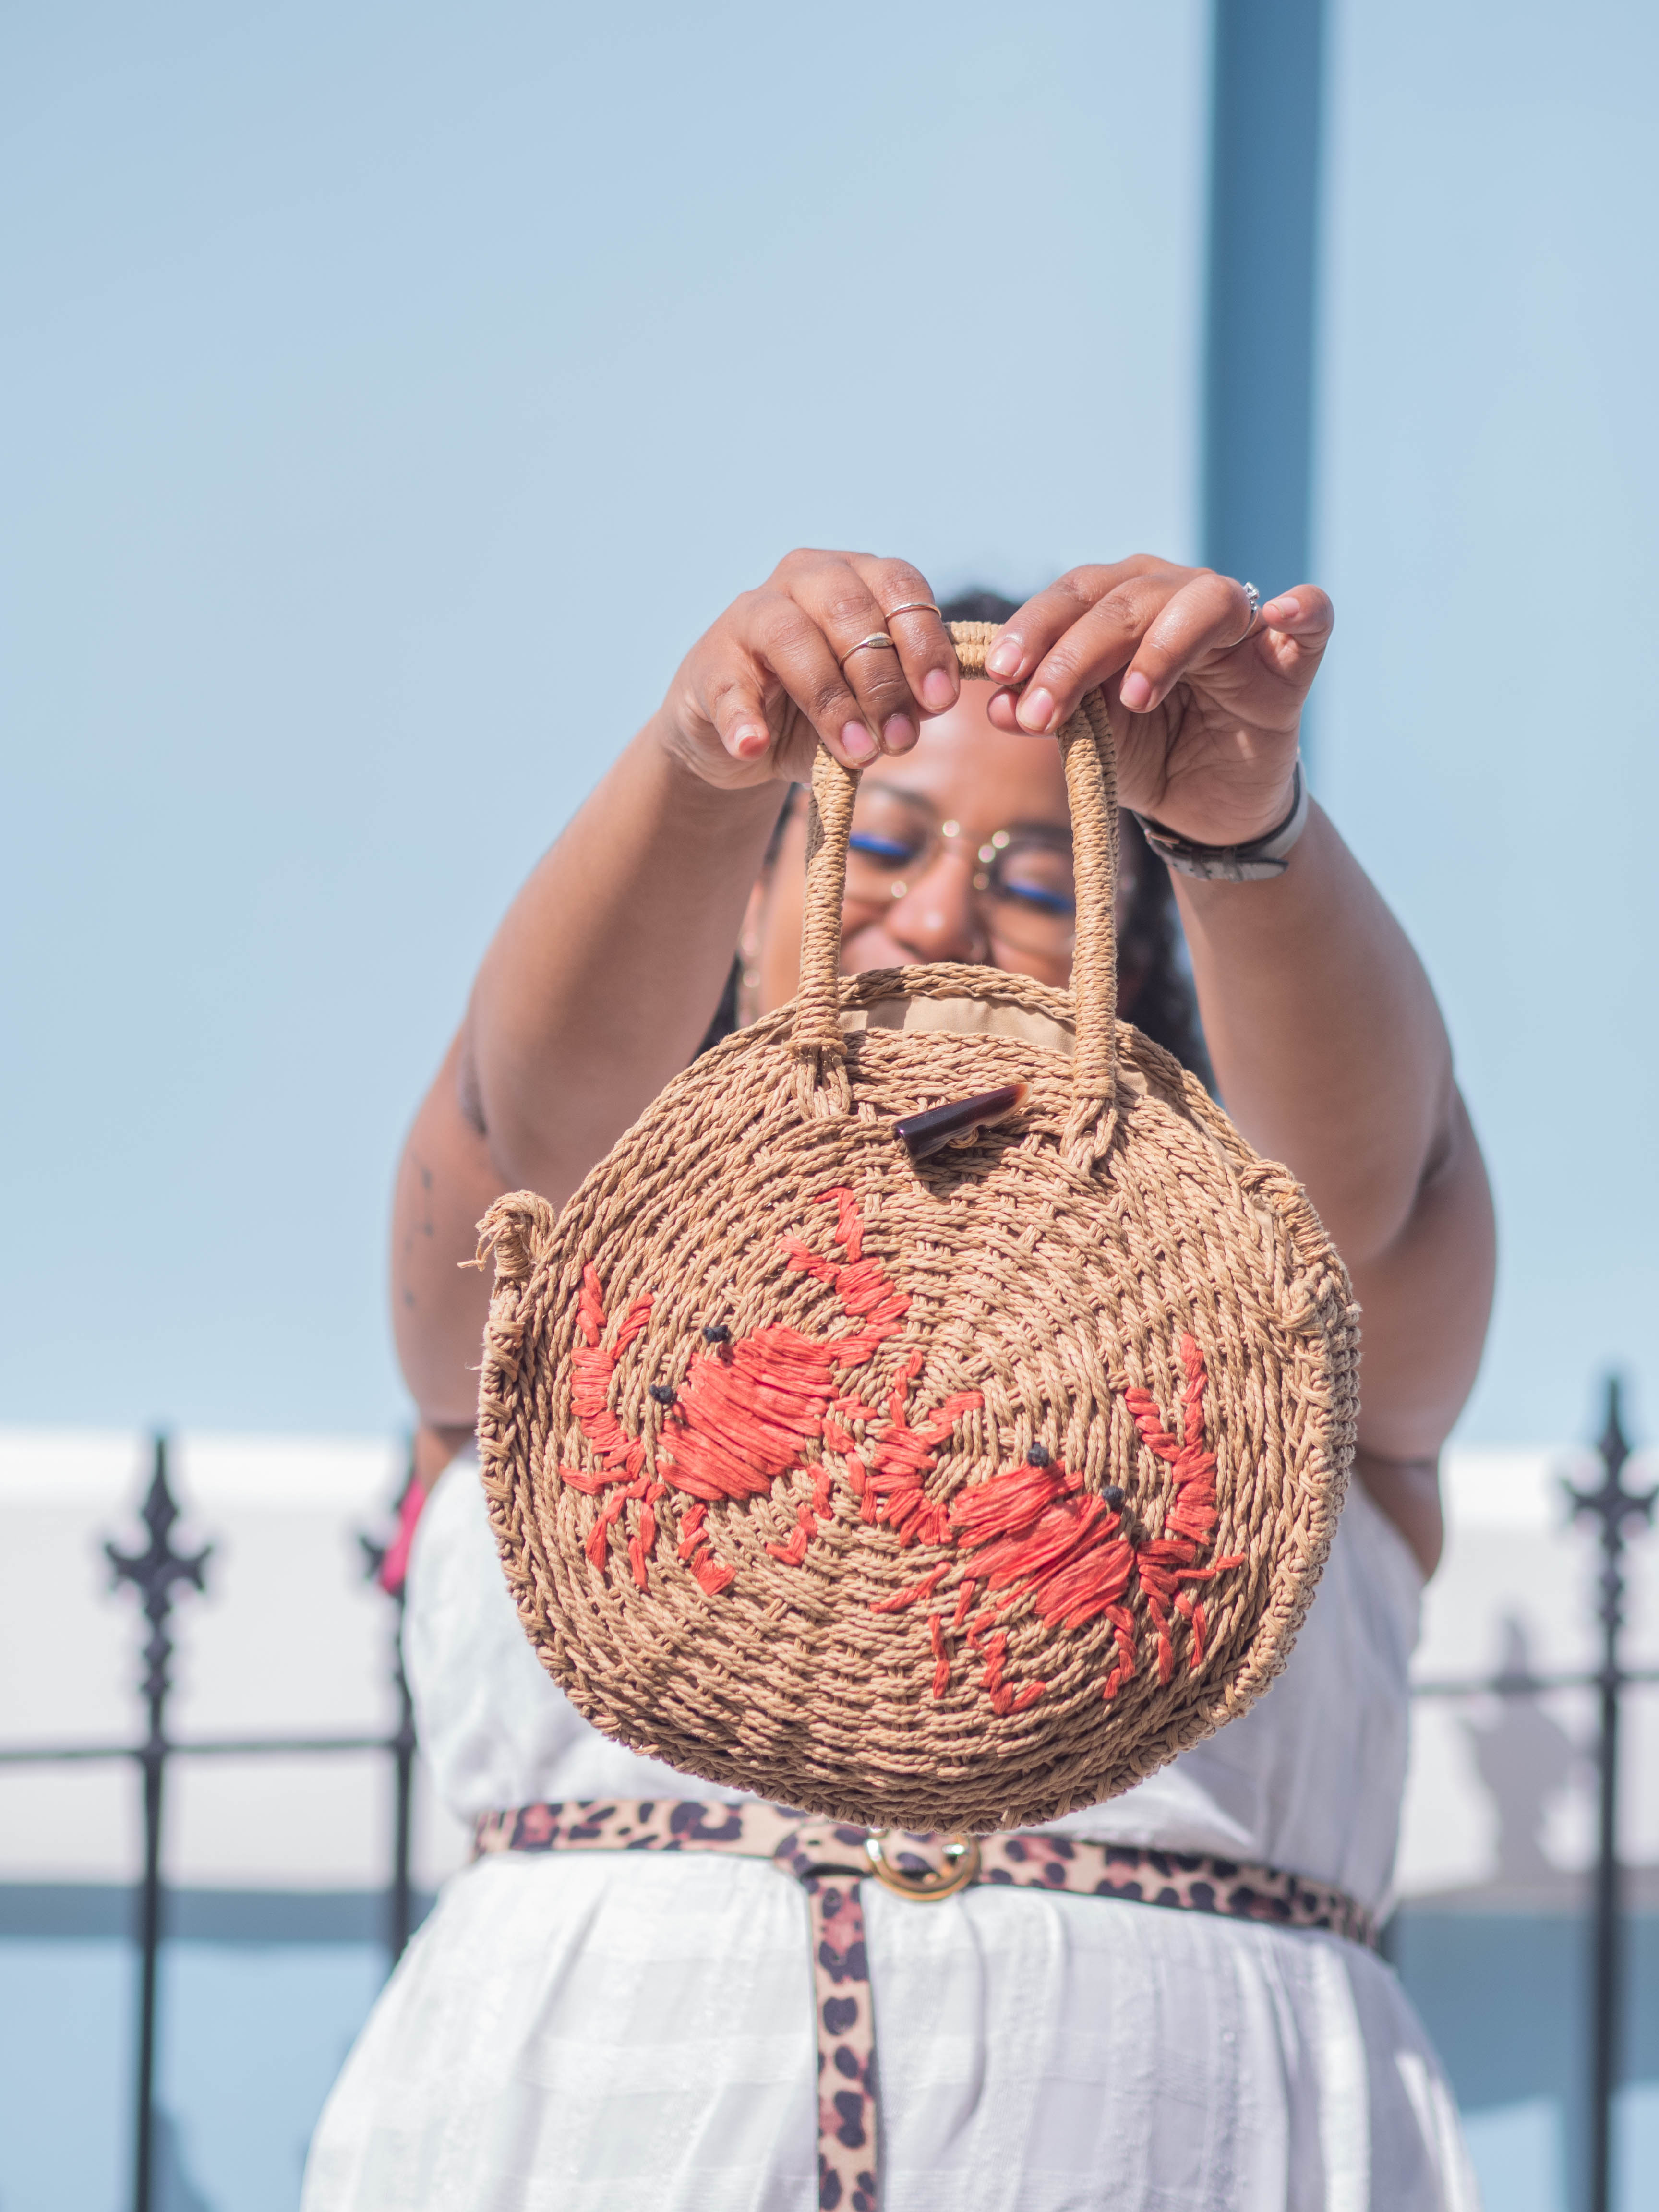 Ghenet stands in the sunshine, holding up a straw bag with red crabs on it.